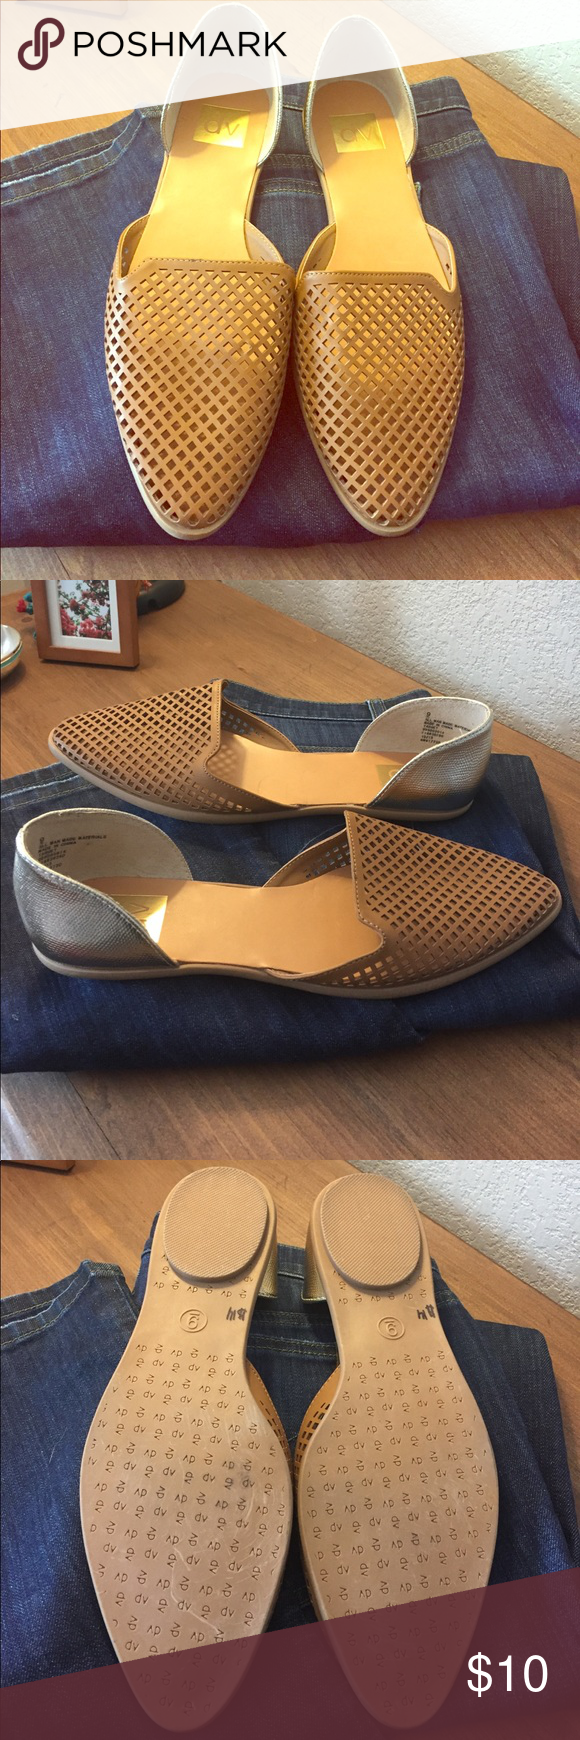 DV by dolce vita slip on cut out Perfect condition, true size 9. Jeans not included in this listing but are in my shop. DV by Dolce Vita Shoes Espadrilles